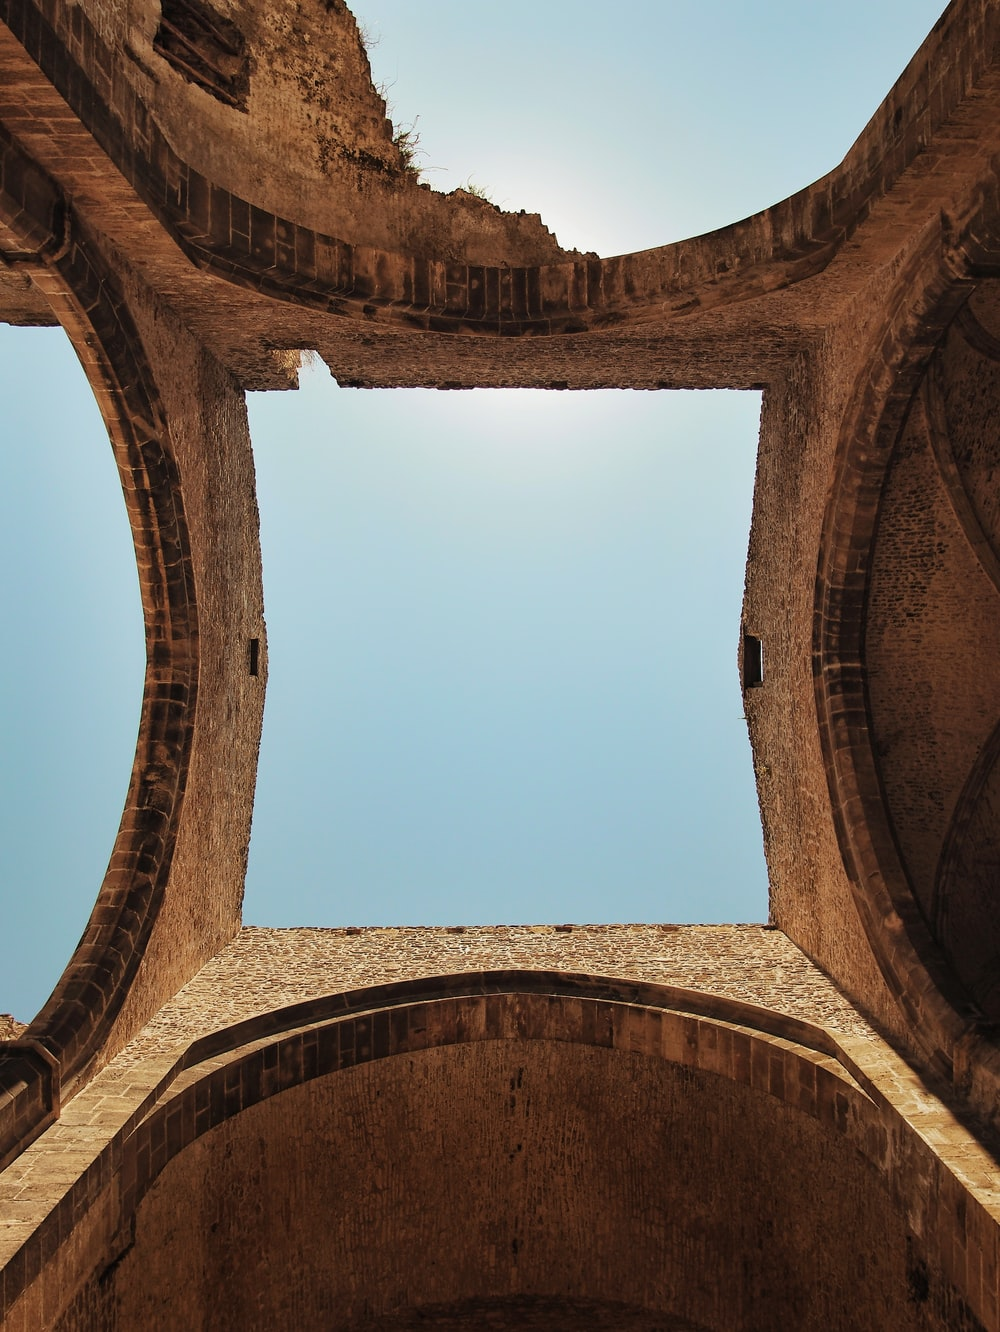 brown concrete arch under blue sky during daytime